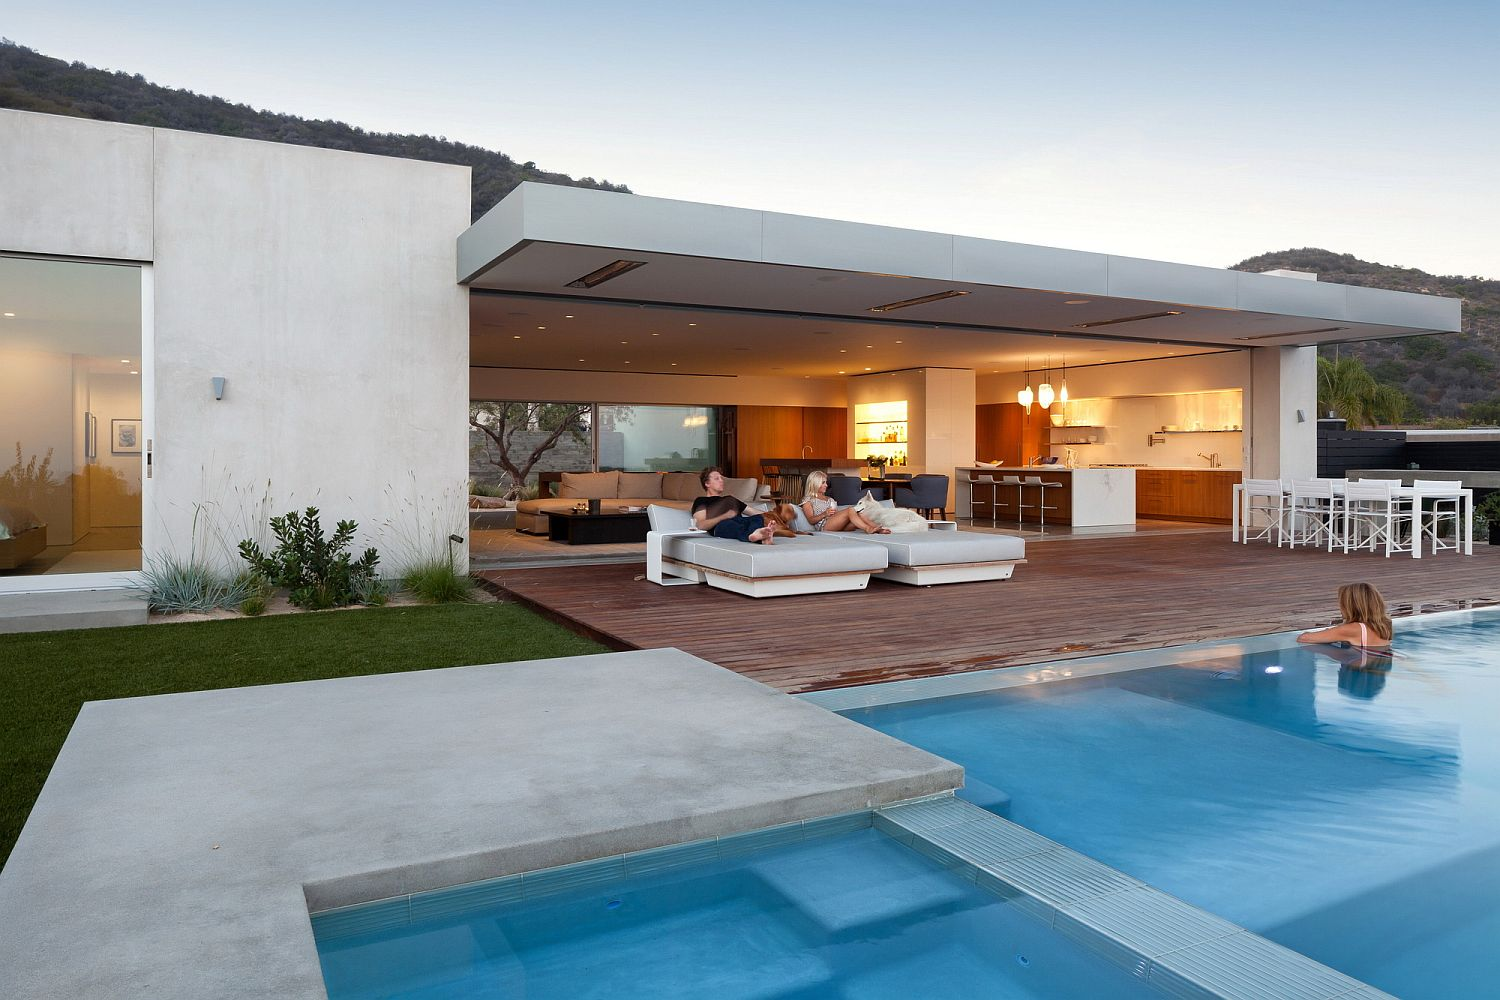 Deck garden and pool area are seamlessly and completely connected with the living space